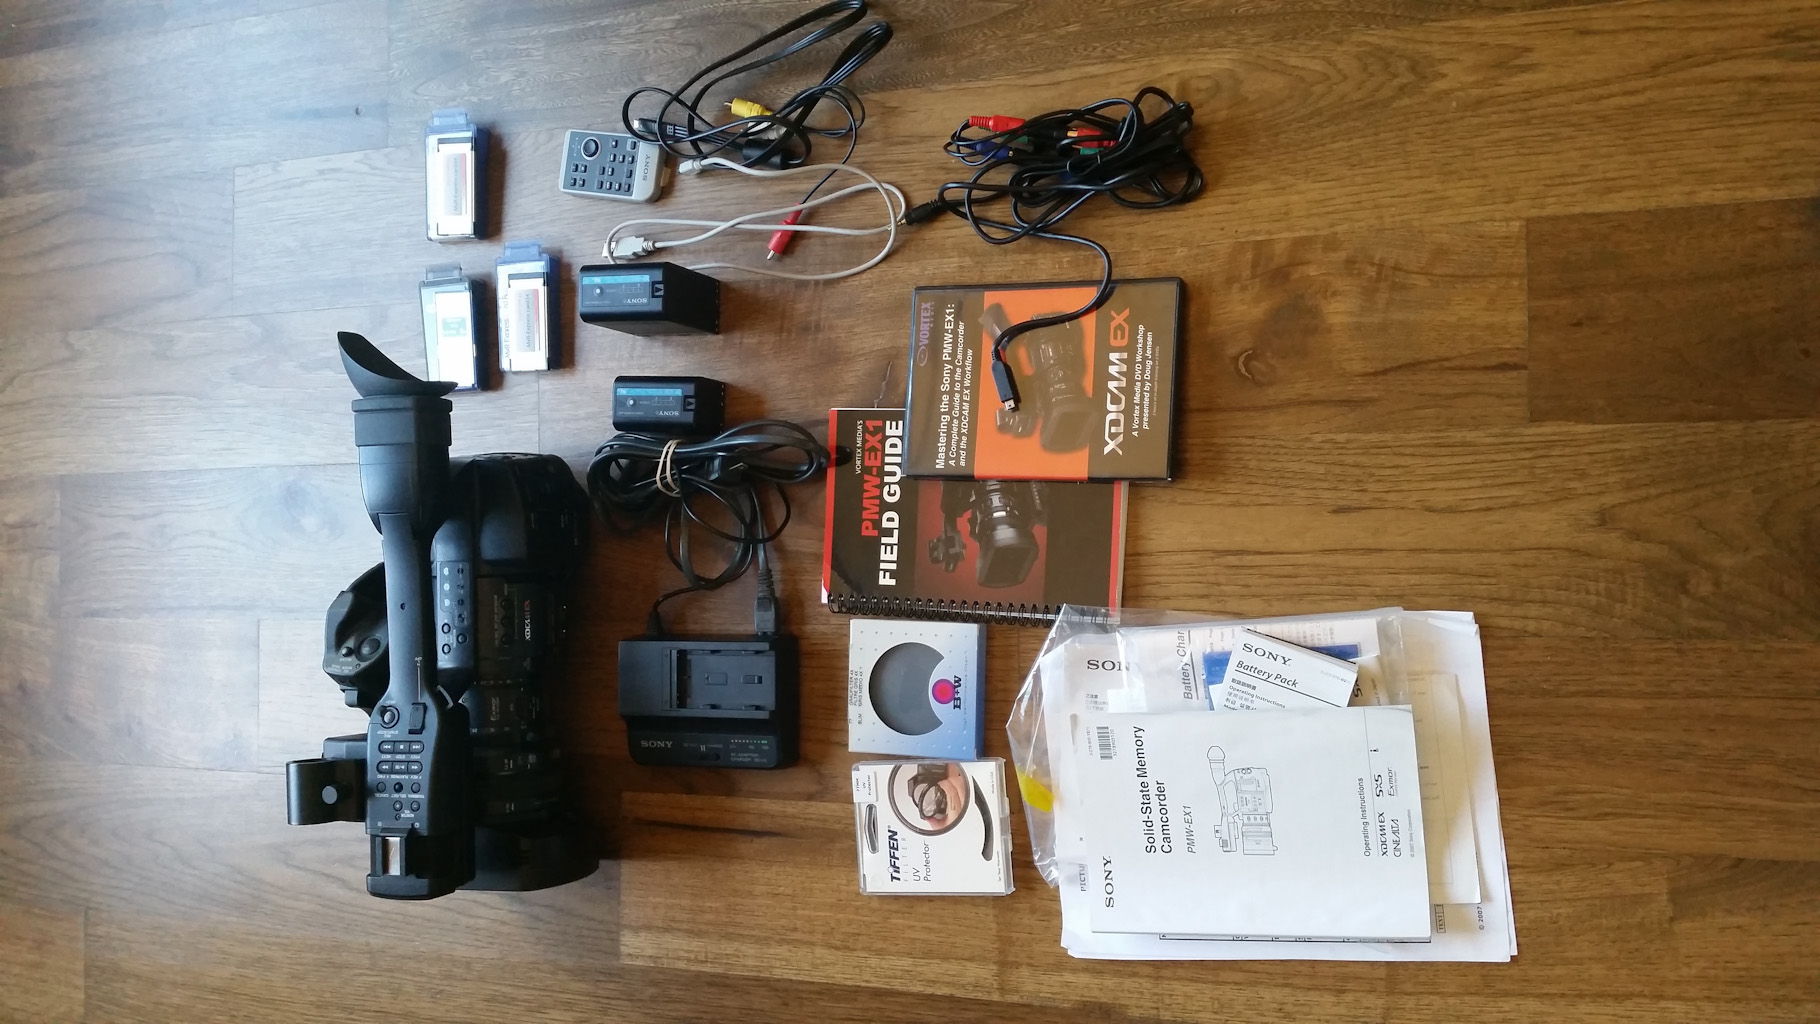 Sony EX-1 + Lot... Glidecam Hd 4000 For Sale Oregon